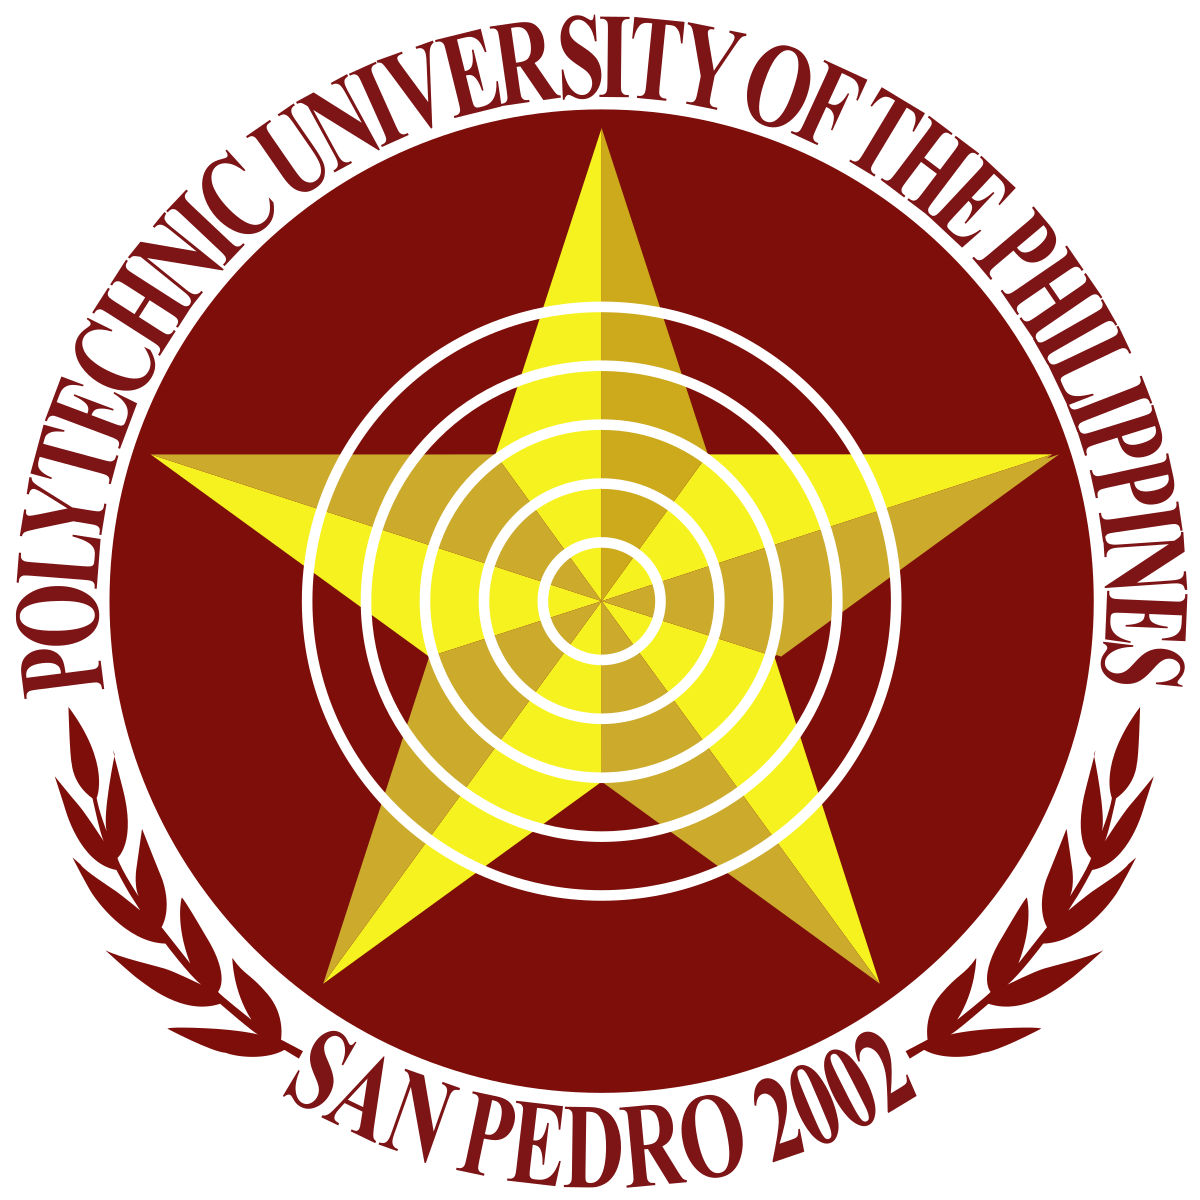 Polytechnic University of the Philippines - San Pedro Campus